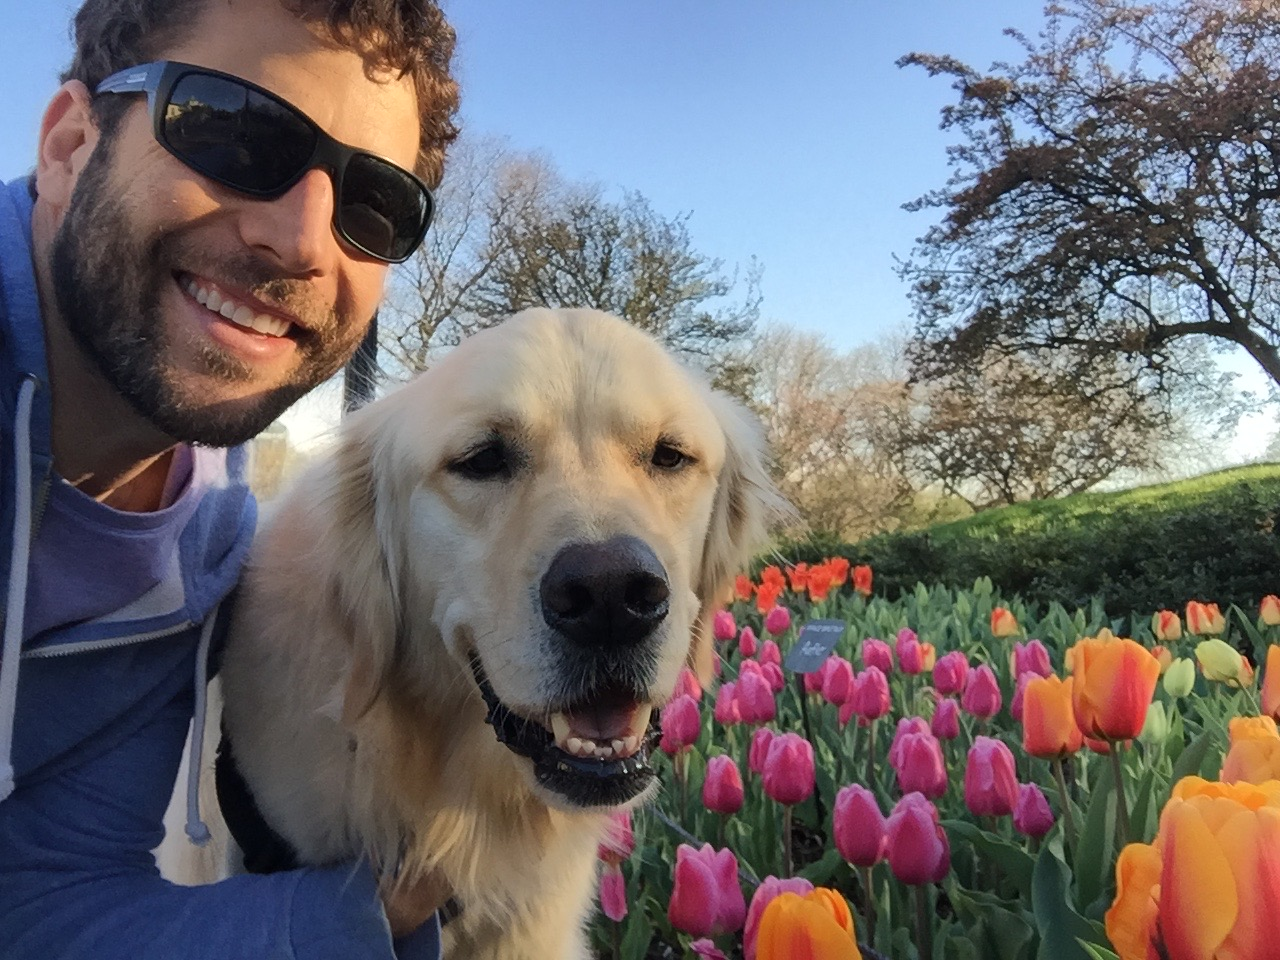 Considering adding a dog, or other suitable animal, to assist with your mental health and wellness? - Go Fetch Wellness wants to be on your team, helping you navigate the overwhelm of options, understand the different types of working animals (emotional support vs service animals), set you up with carefully selected local resources, all while building your